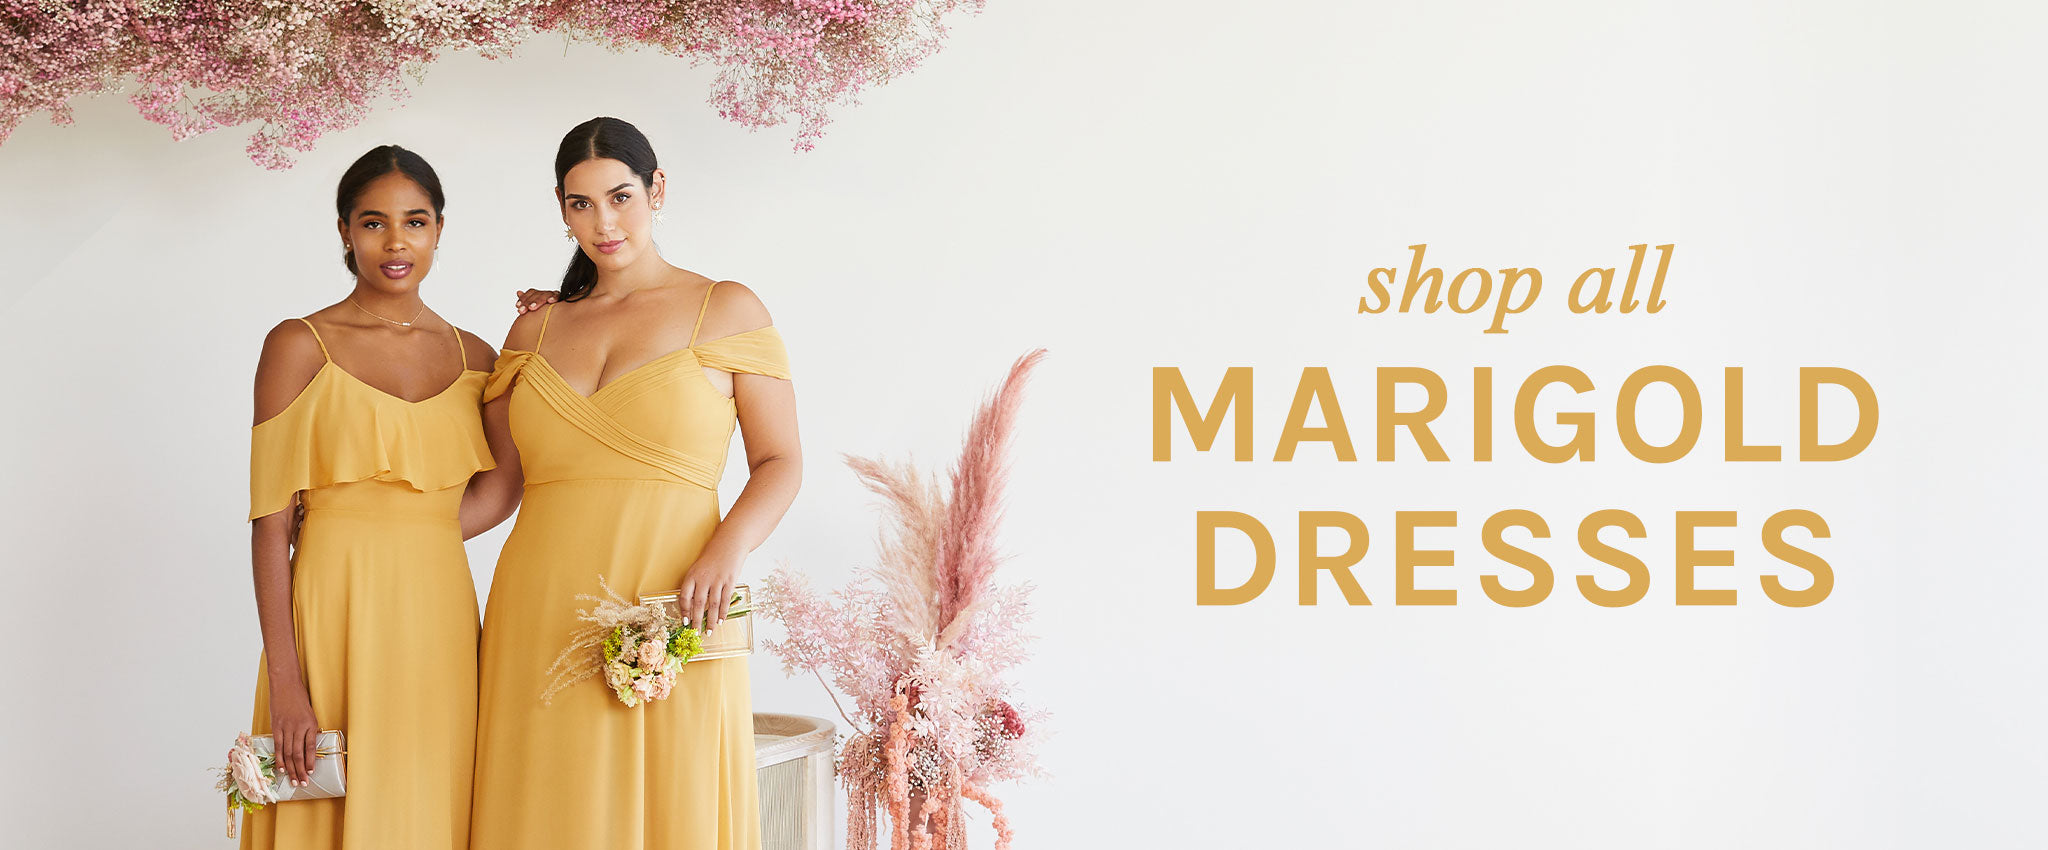 Shop All Marigold Dresses